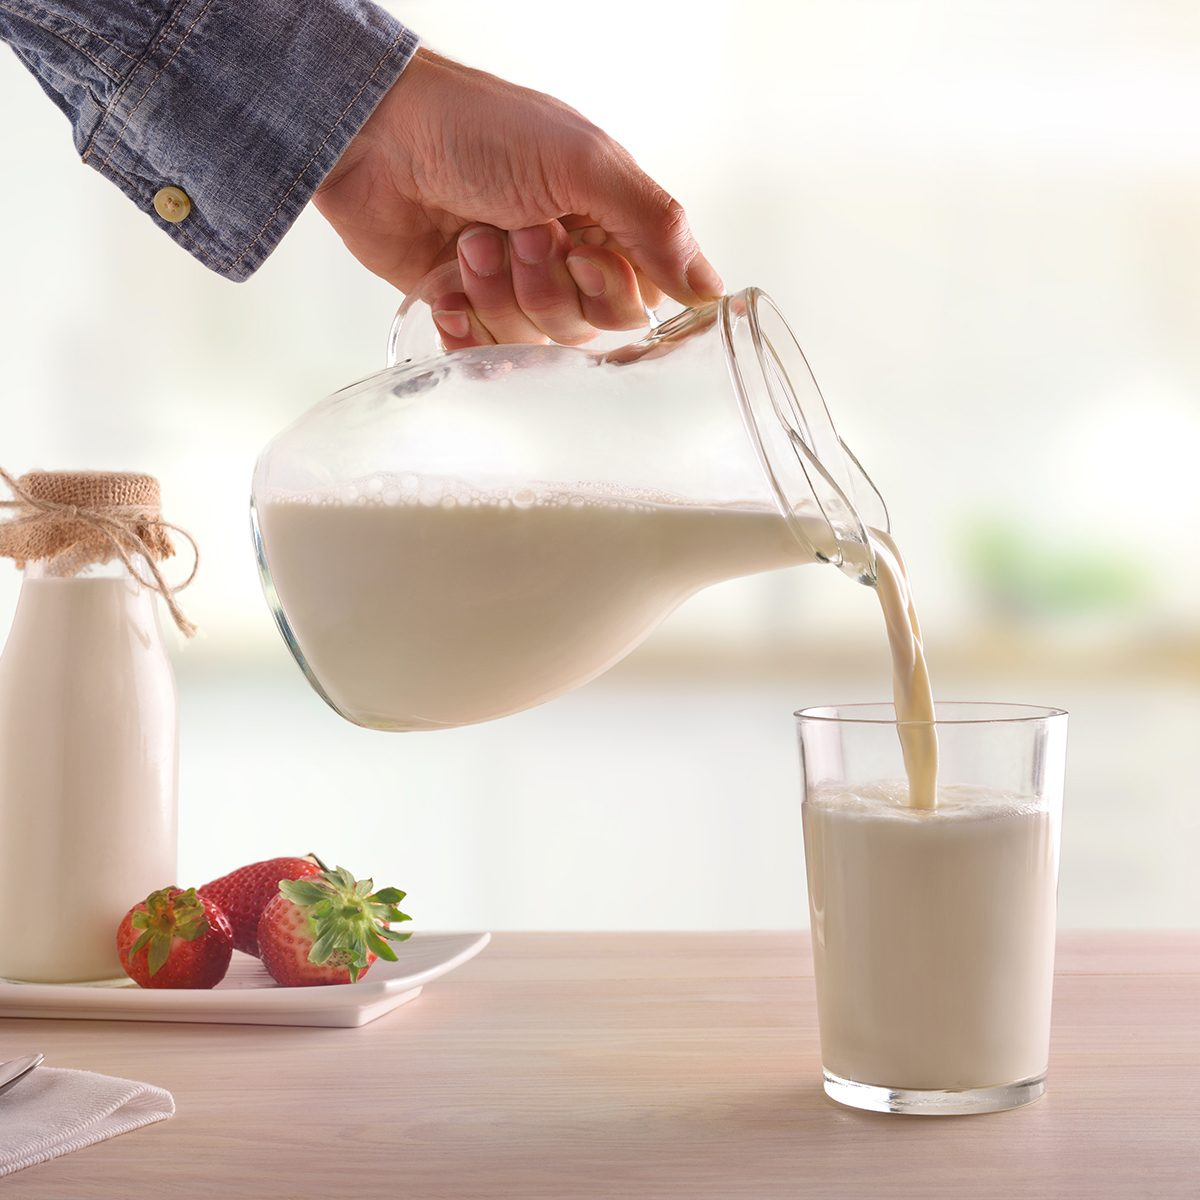 Serving breakfast milk with a jug in a glass on a white wooden kitchen table.